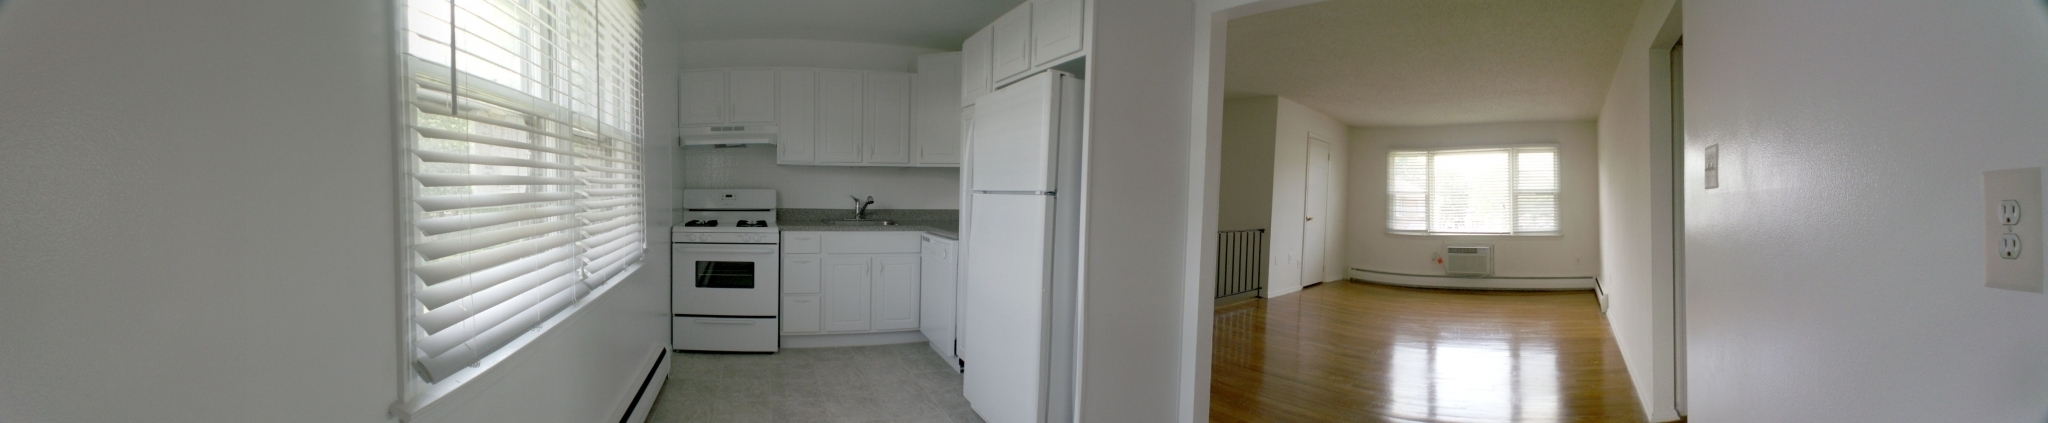 1 bedroom white cabinets